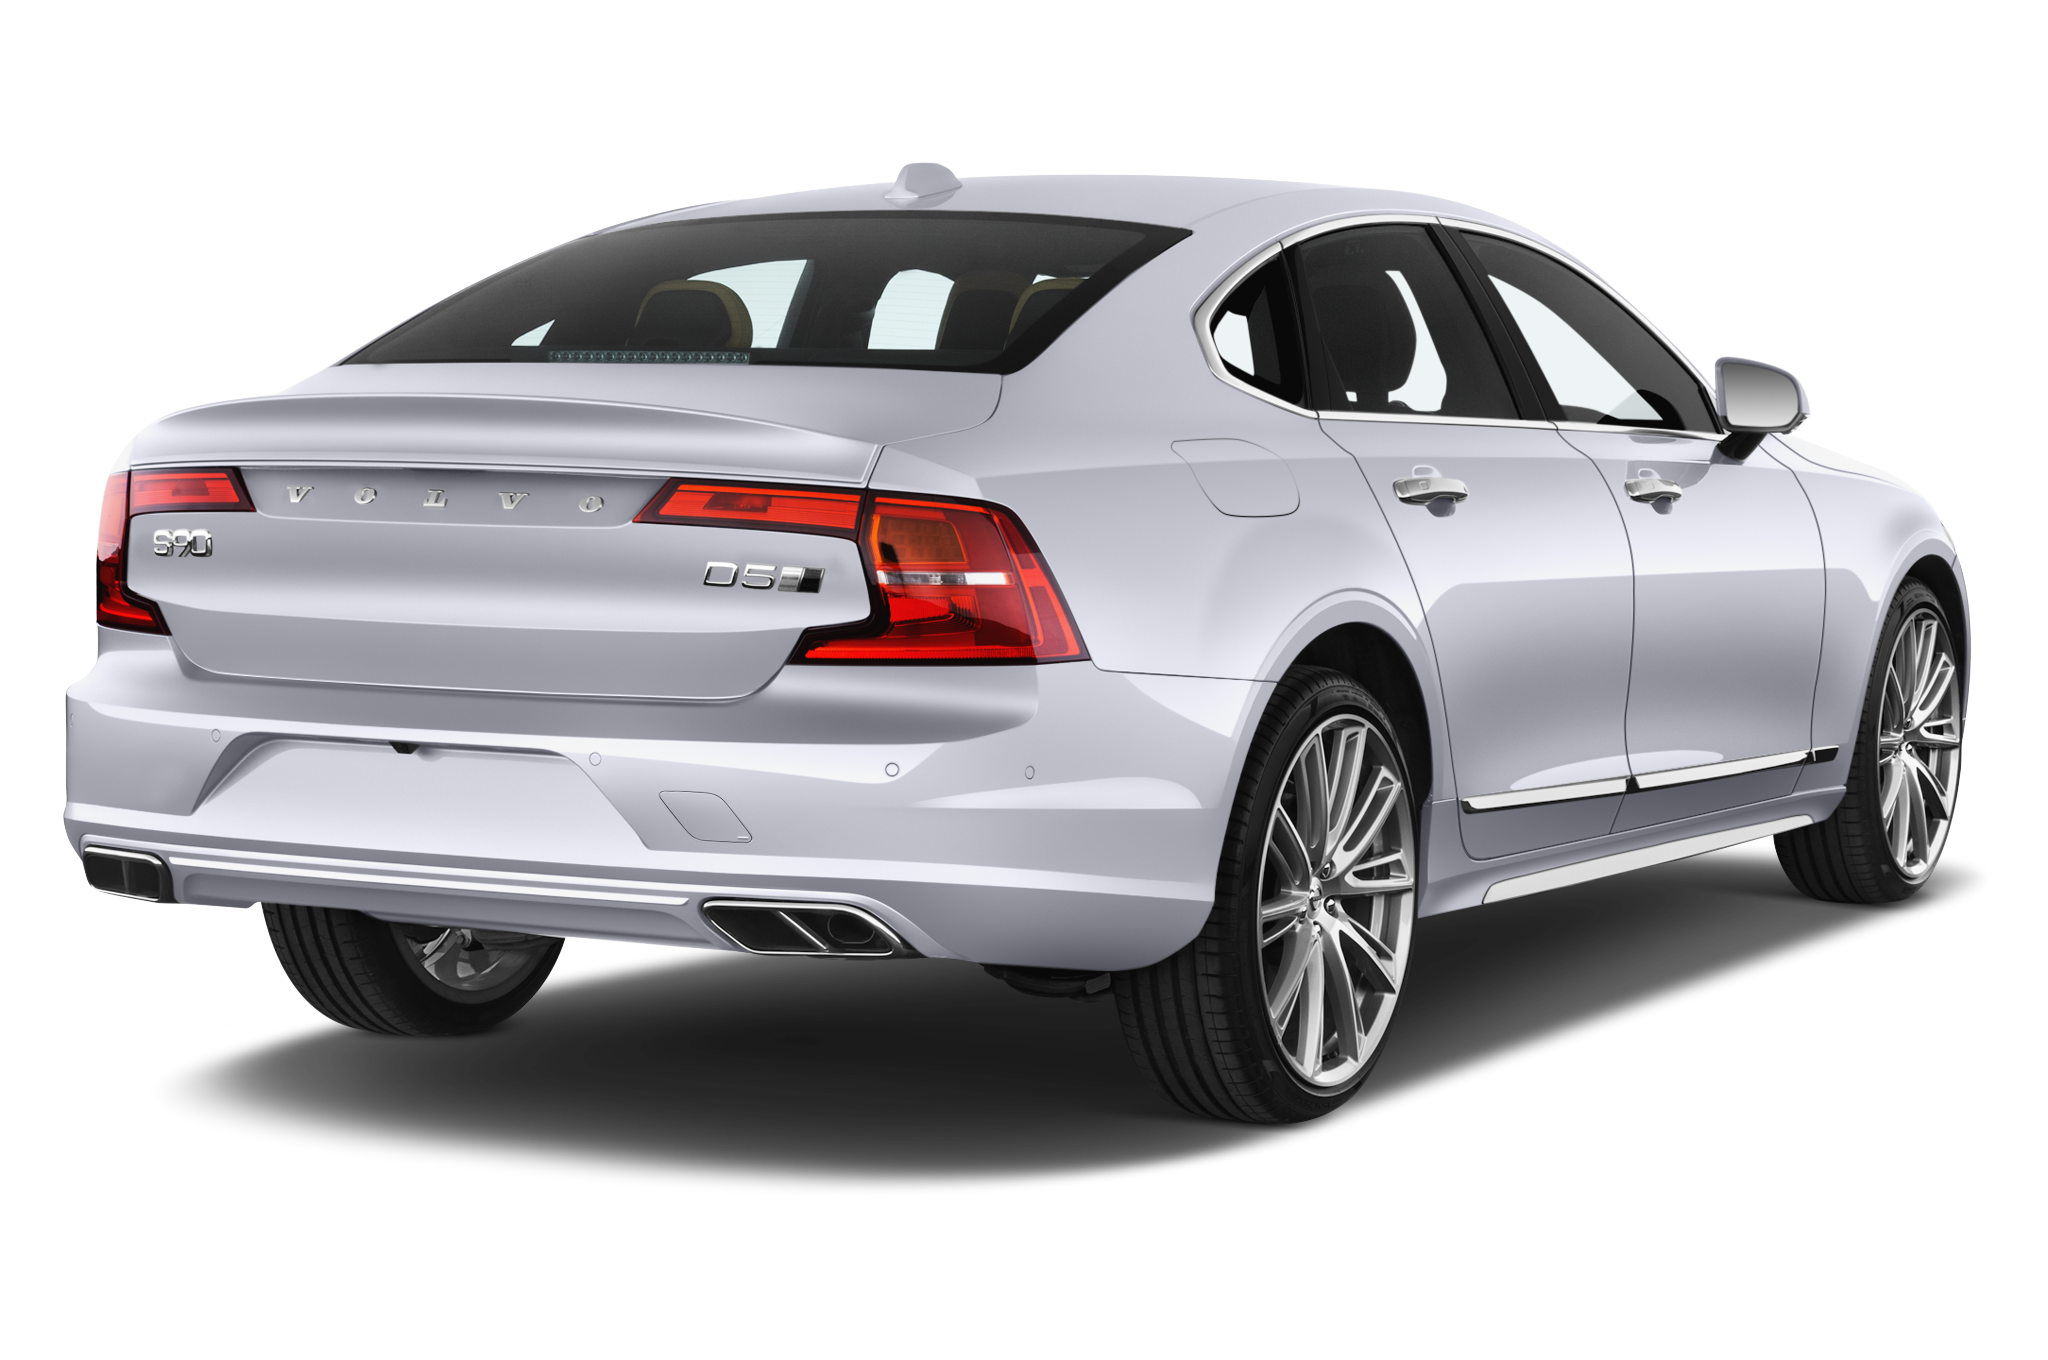 Volvo S90 company car side rear view